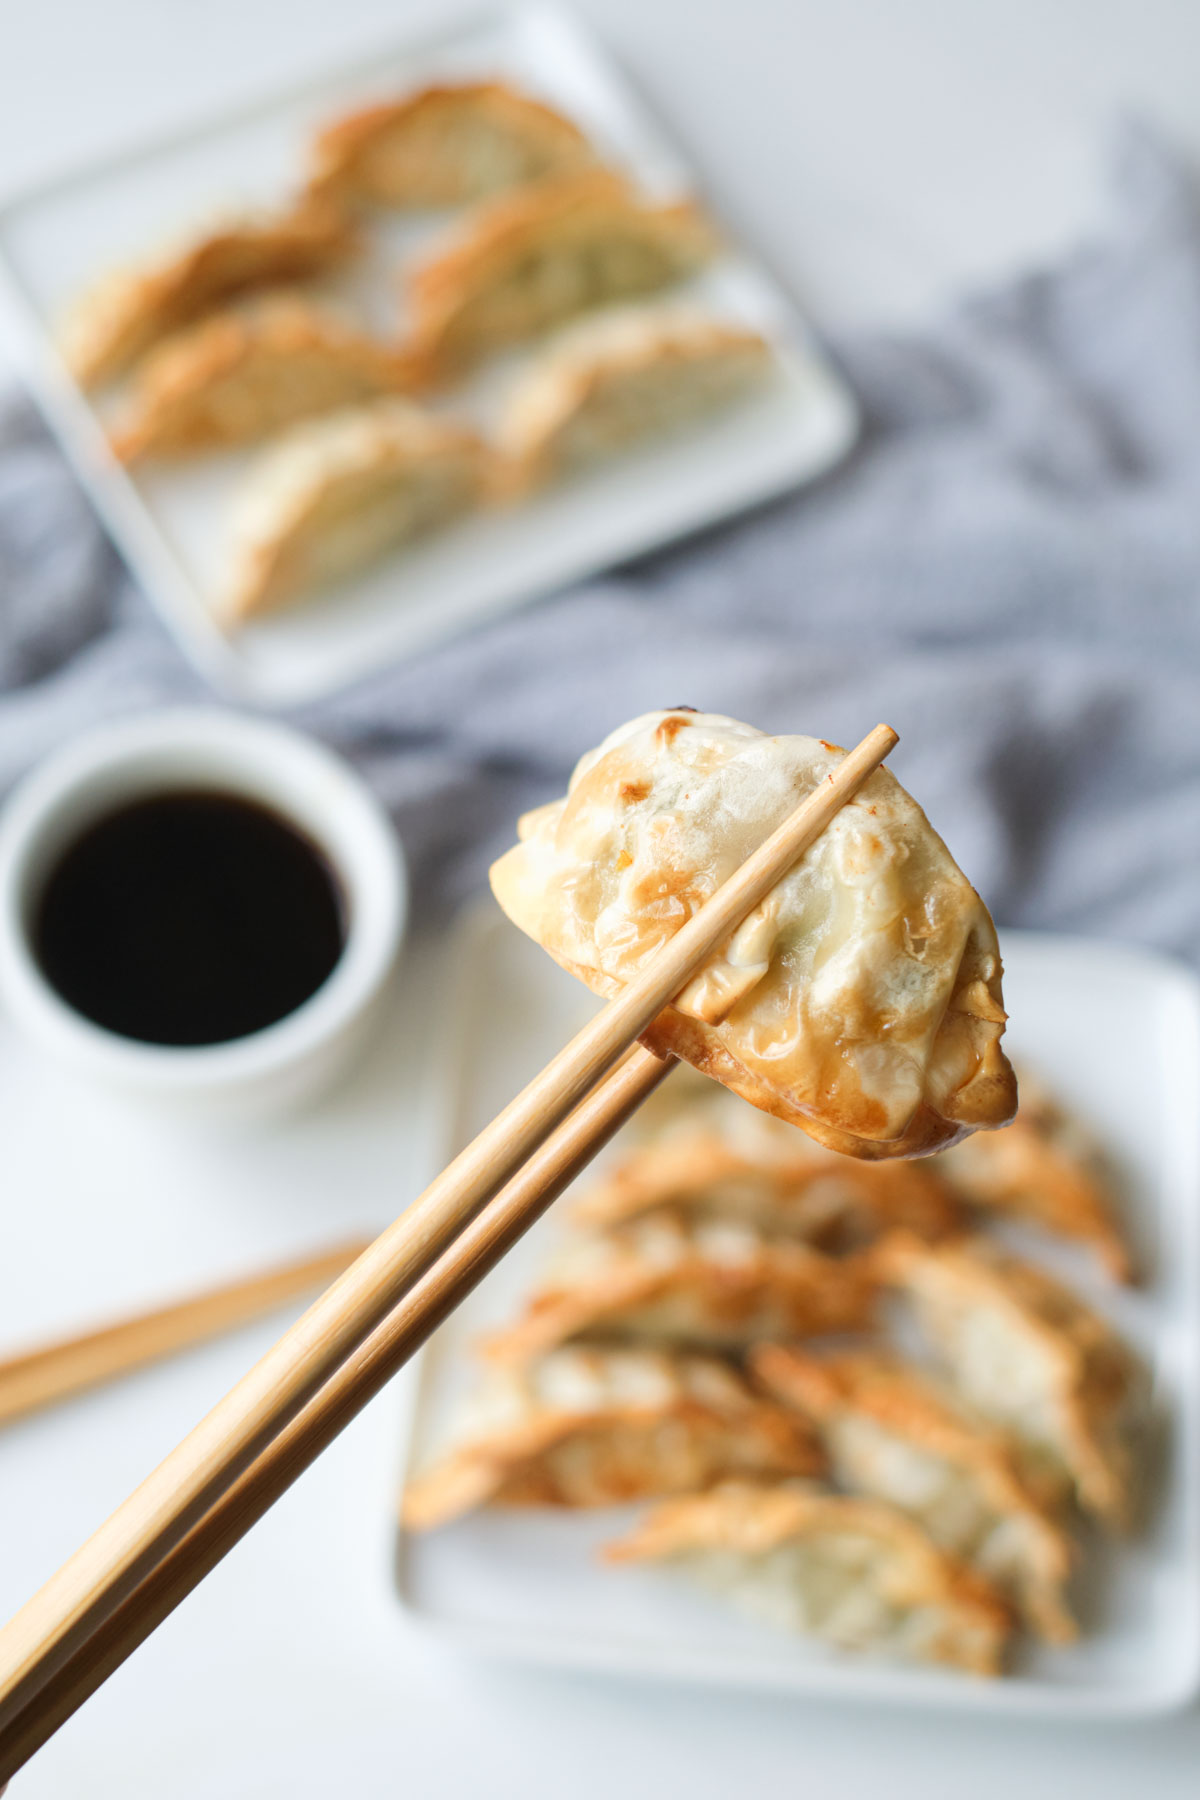 one of the completed air fryer frozen potstickers held by chopsticks